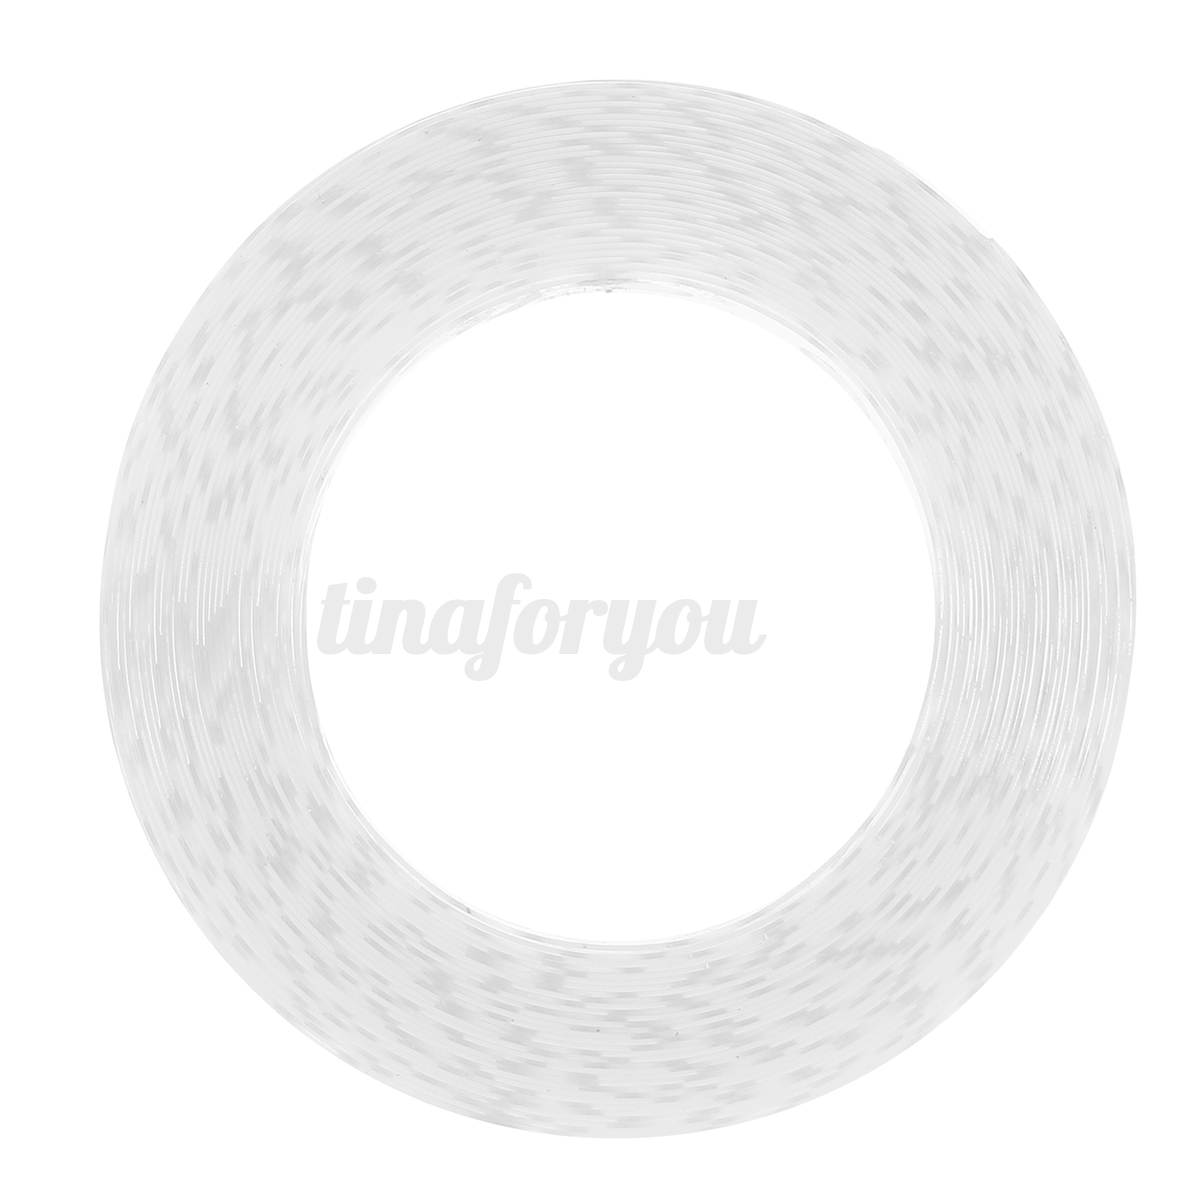 5m Long Balloon Arch Tape Rolls Party Decoration